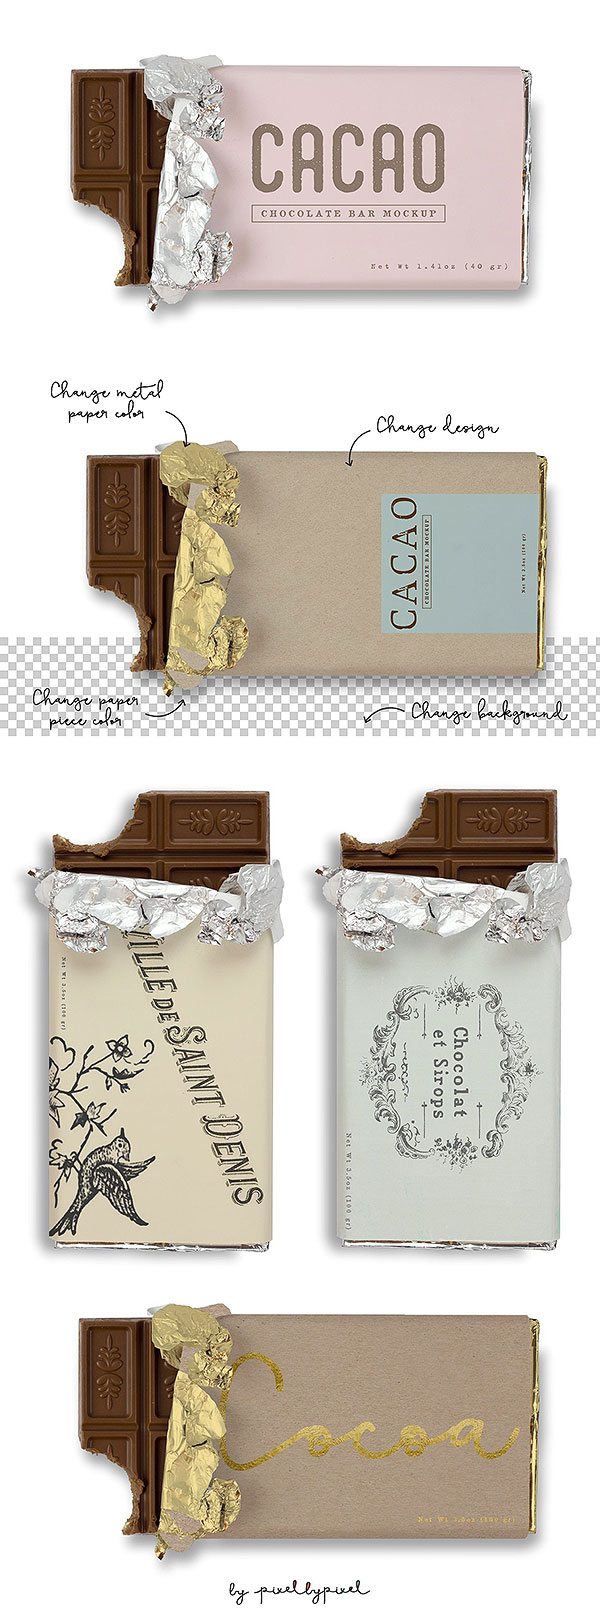 Chocolate Bar Mockup 2